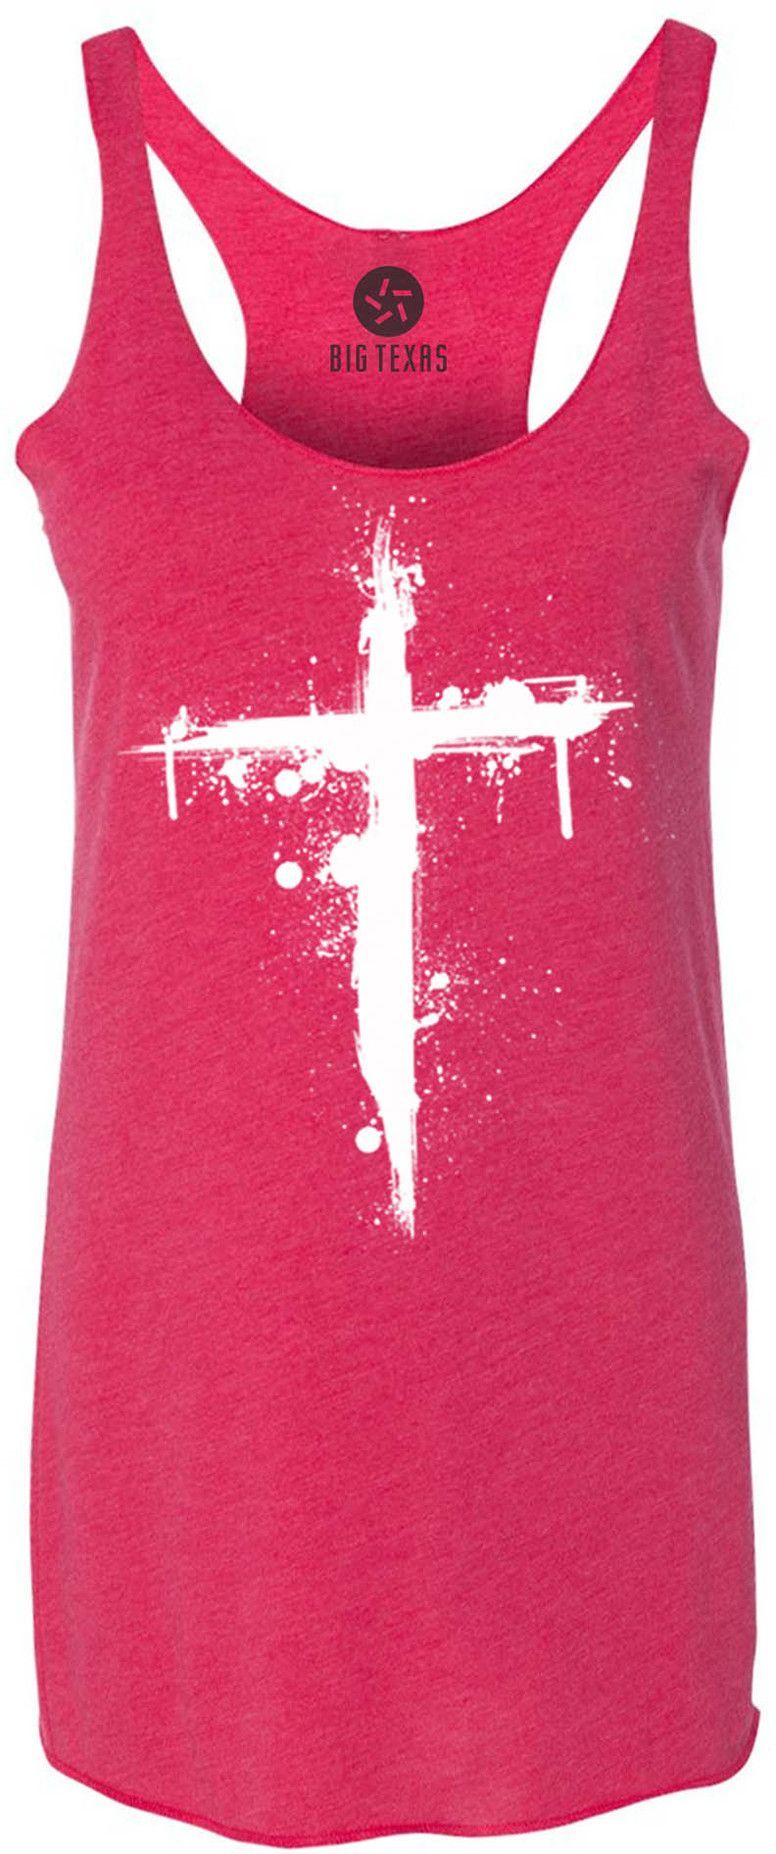 Cross (White) Tri-Blend Racerback Tank-Top